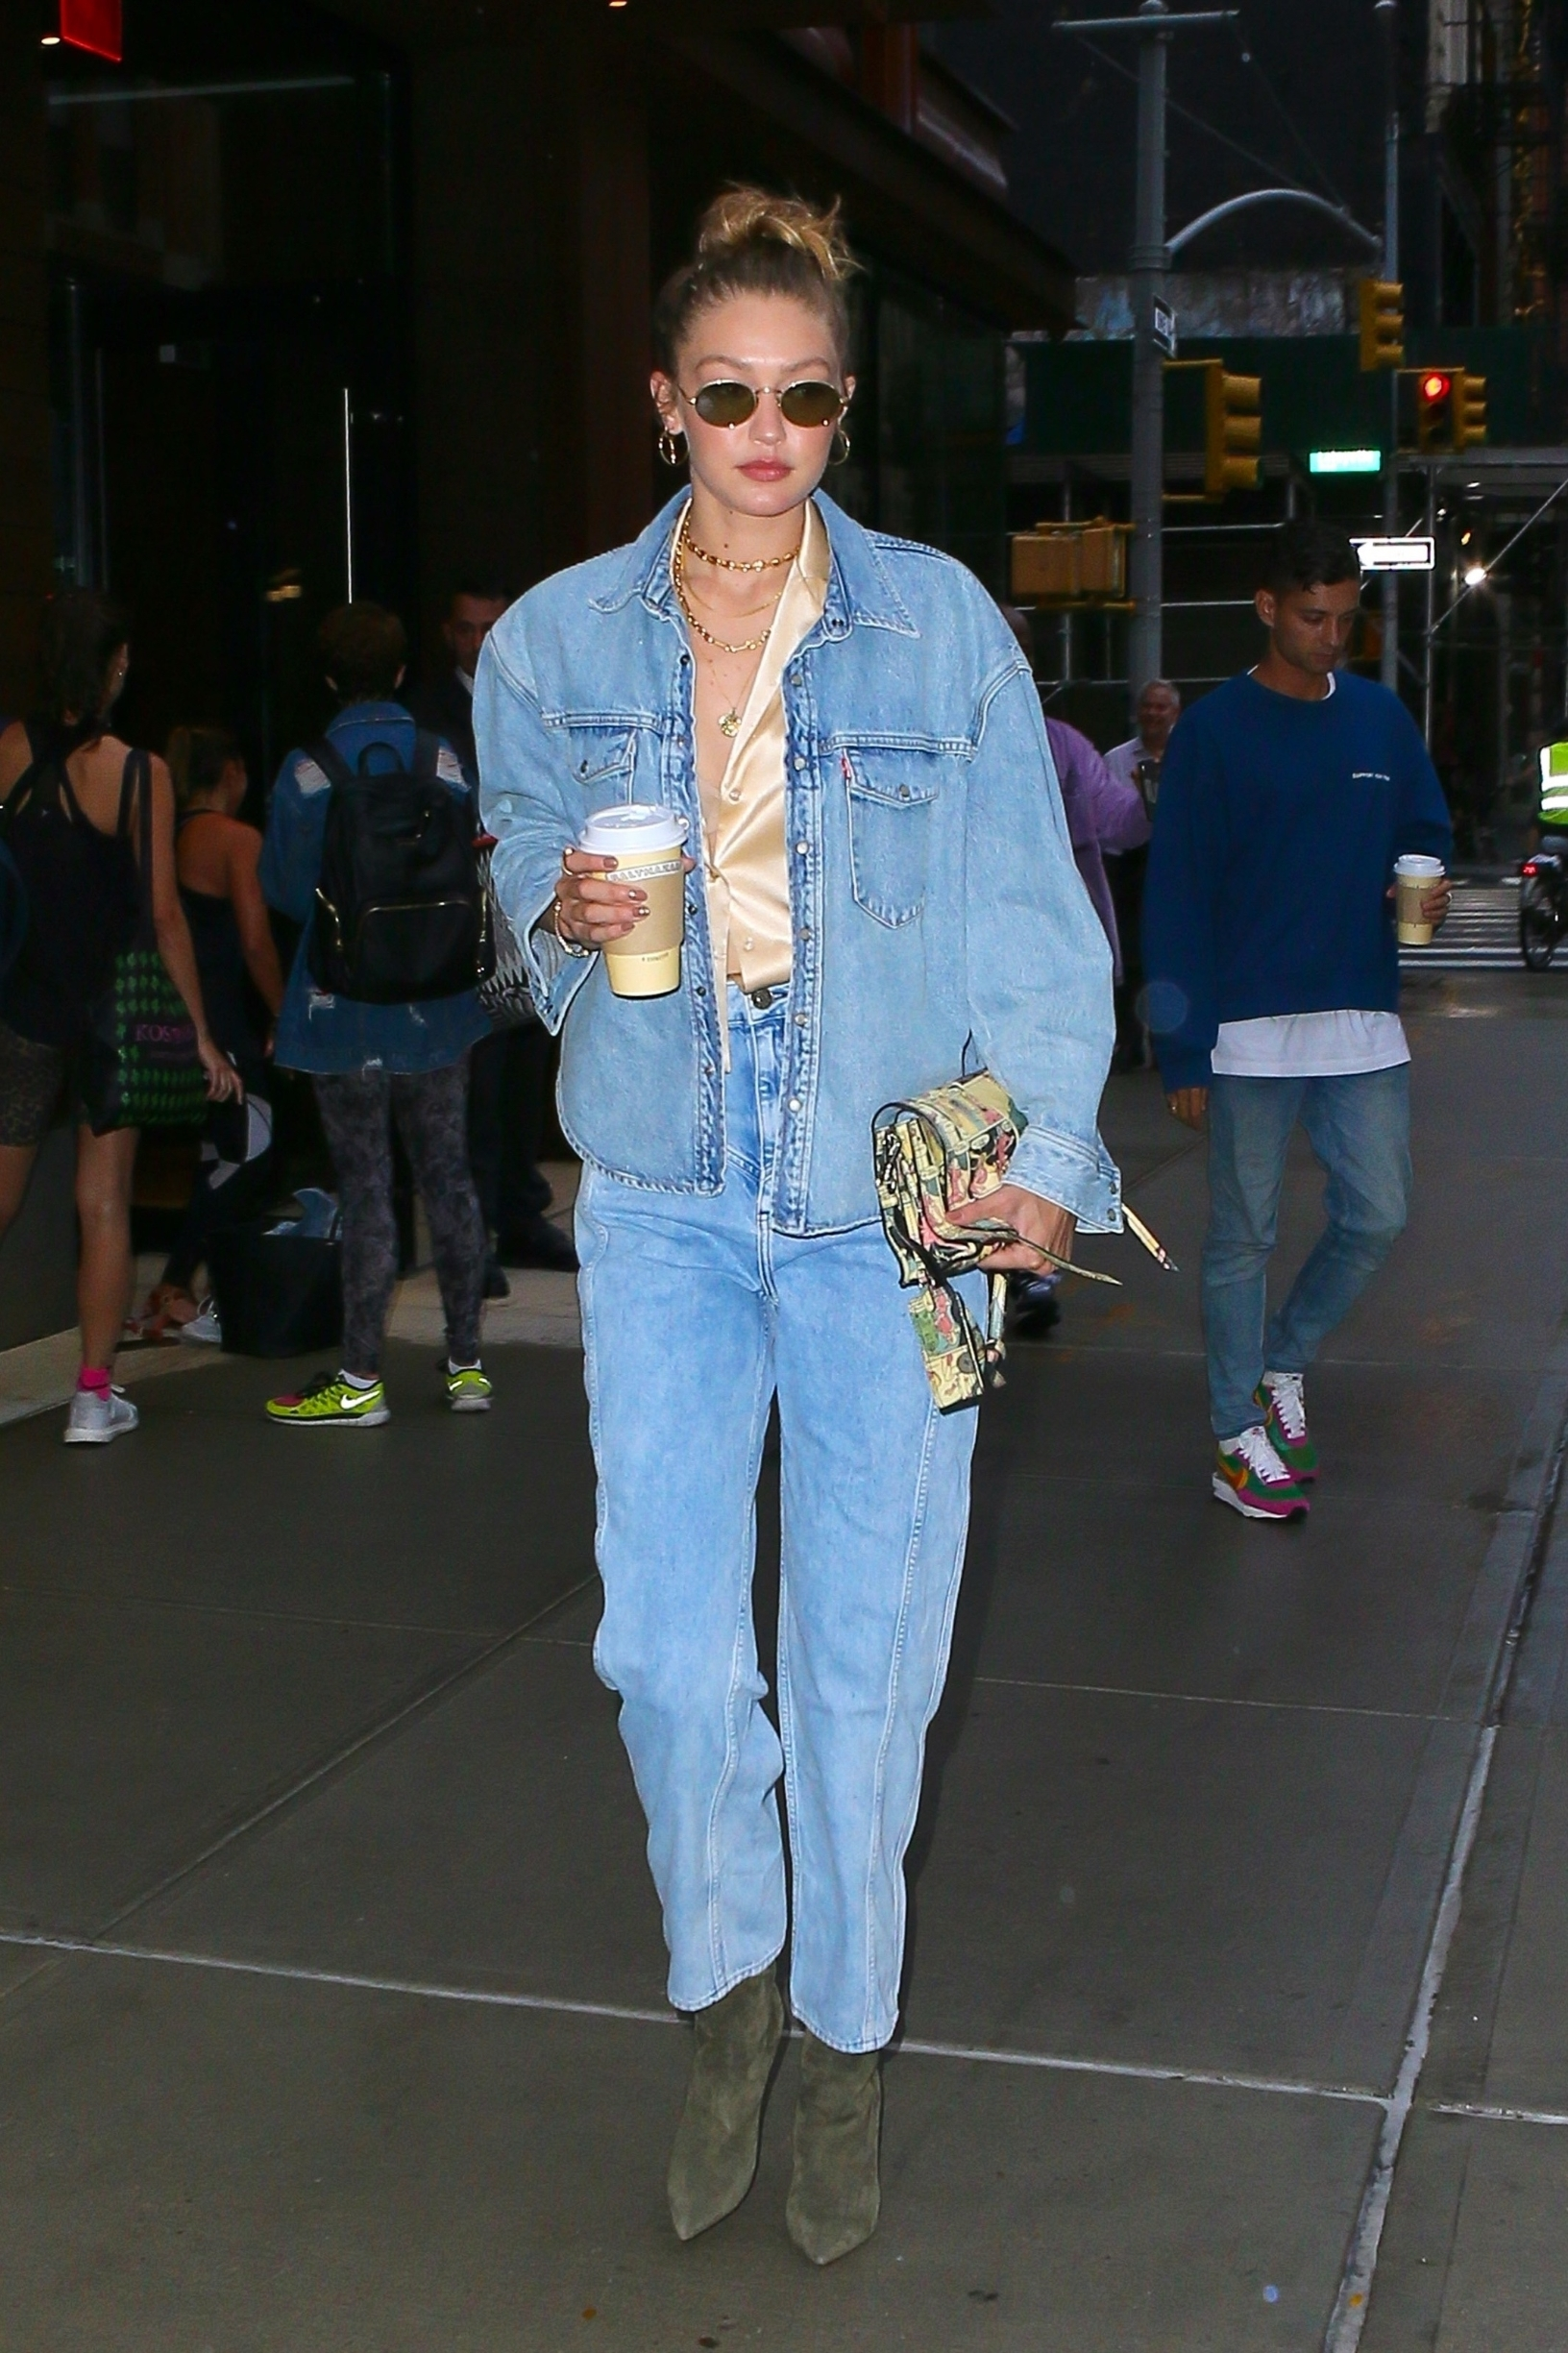 New York, NY  - Gigi Hadid heads to her curbside ride donning a denim ensemble on her way to the US open with friends.  BACKGRID USA 28 AUGUST 2019, Image: 467773839, License: Rights-managed, Restrictions: , Model Release: no, Credit line: T.JACKSON / BACKGRID / Backgrid USA / Profimedia